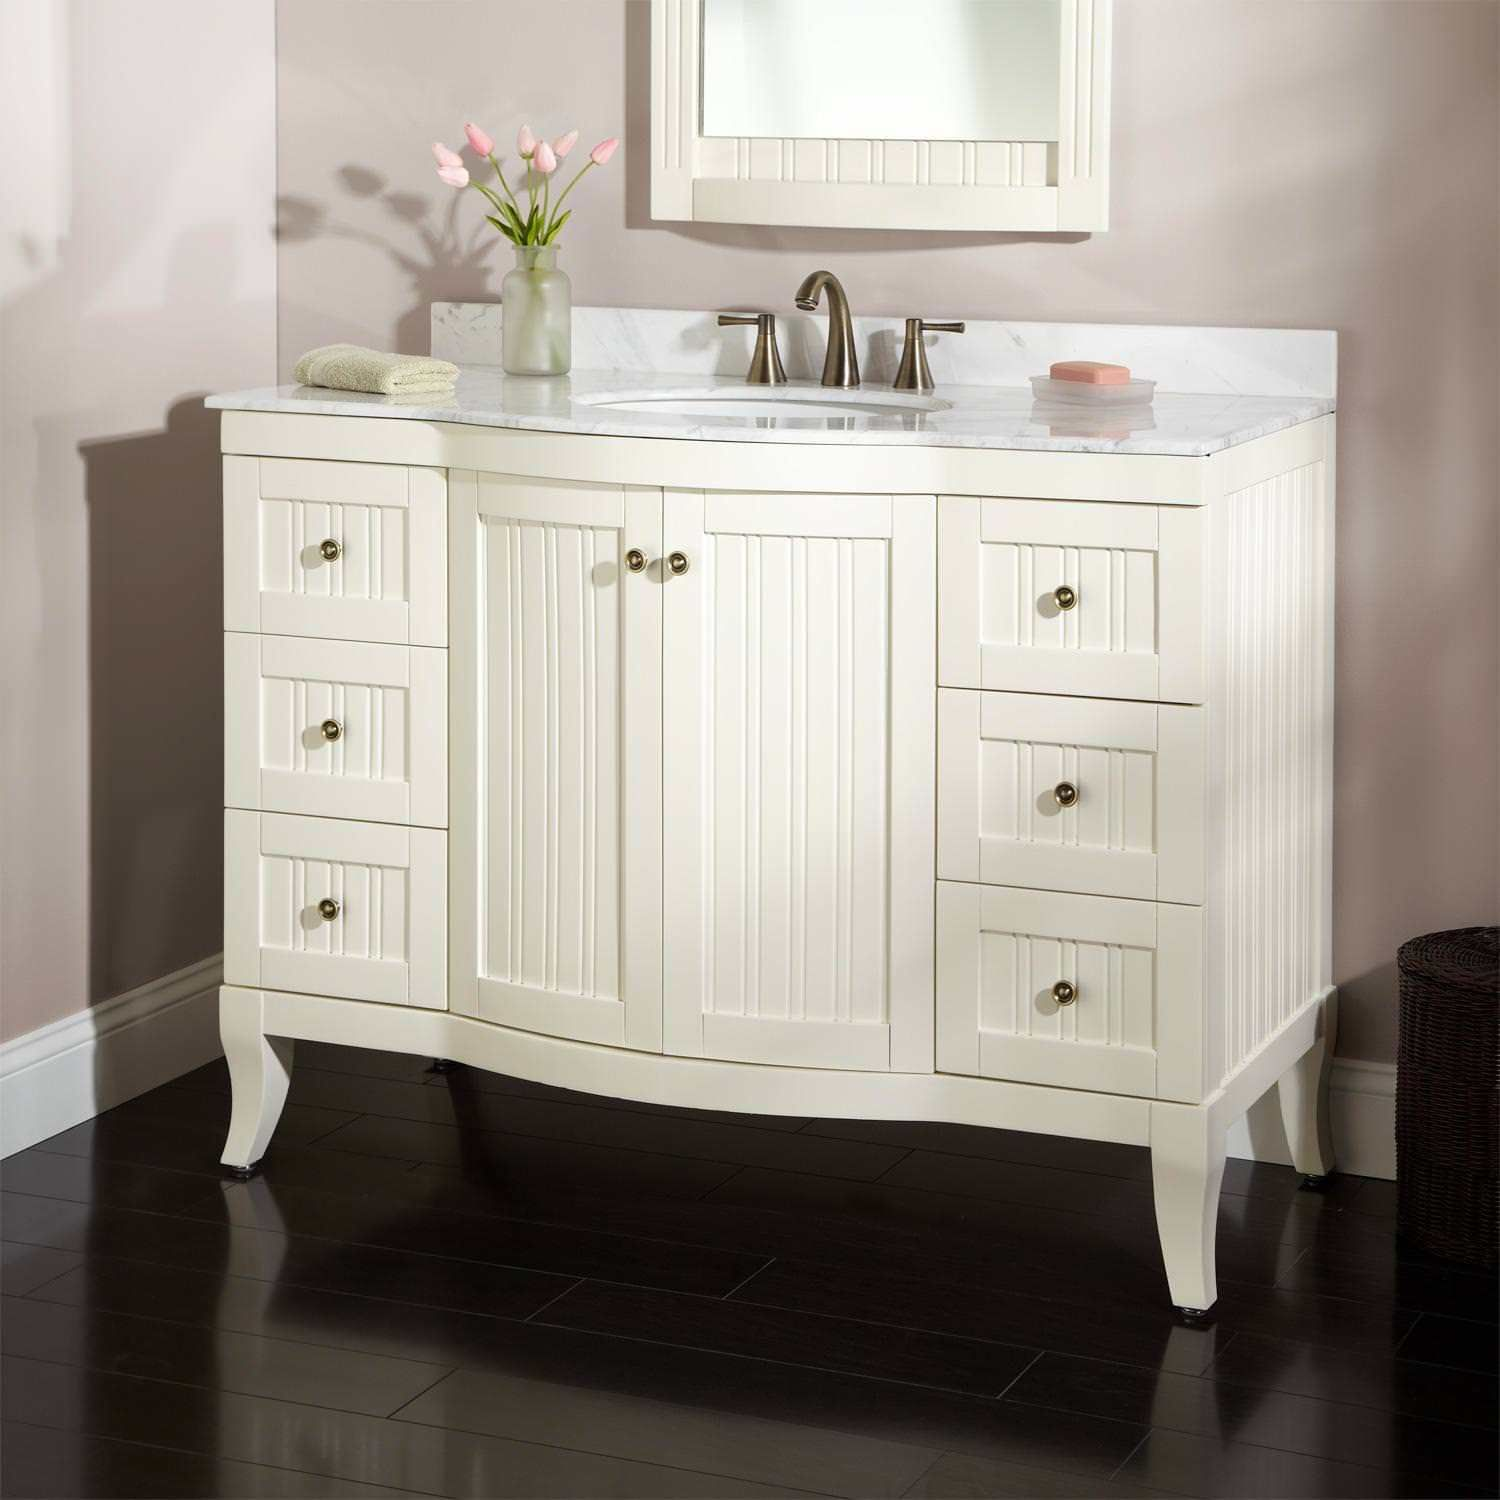 fascinating custom bathroom vanity tops photo-Contemporary Custom Bathroom Vanity tops Collection